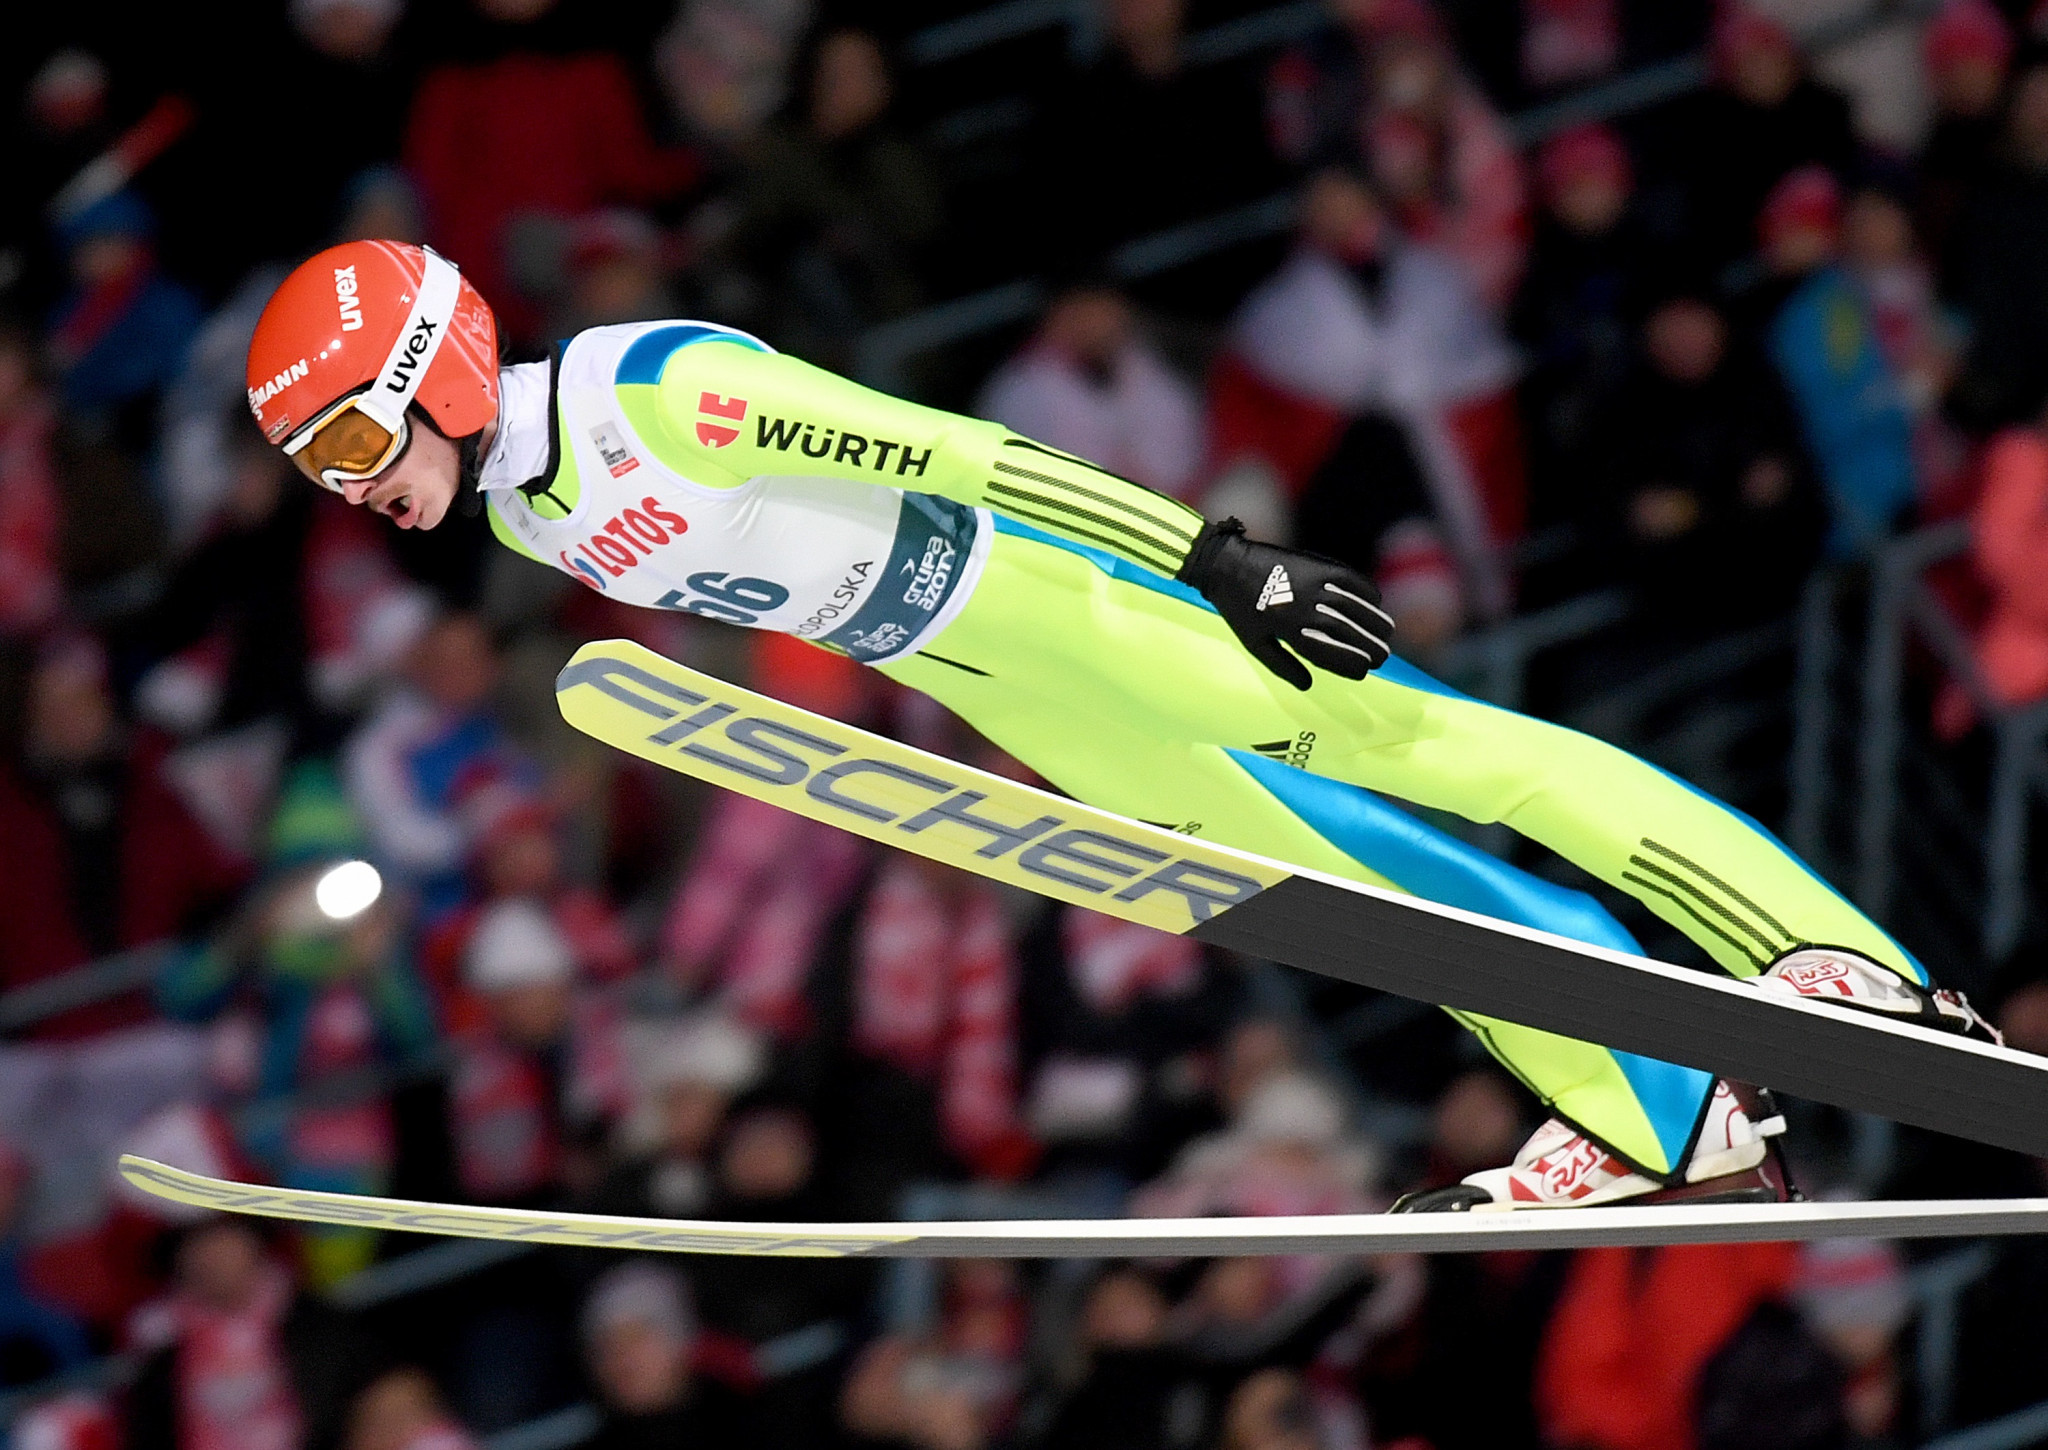 Germany's Richard Freitag remains the overall World Cup leader, despite finishing second today ©Getty Images